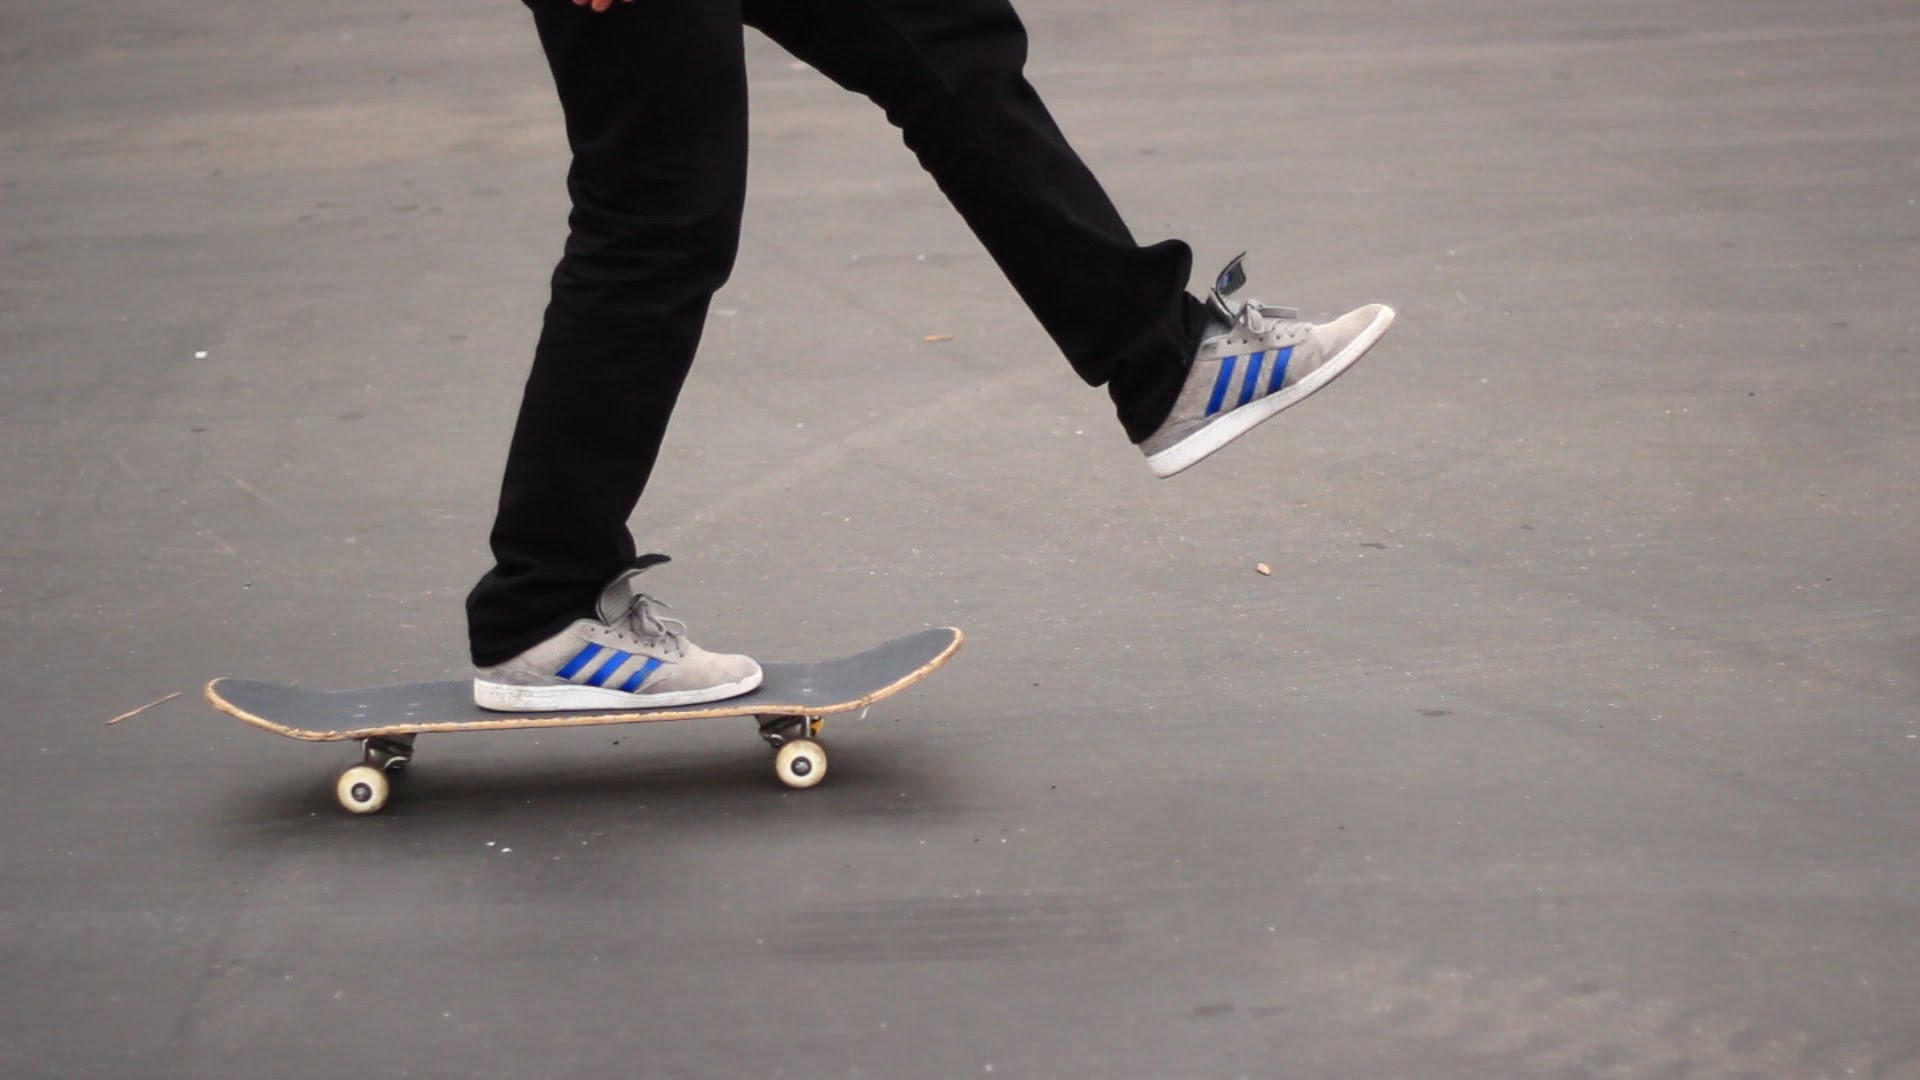 HOW TO SKATEBOARD FOR BEGINNERS | HOW TO SKATEBOARD EPISODE 1 - YouTube